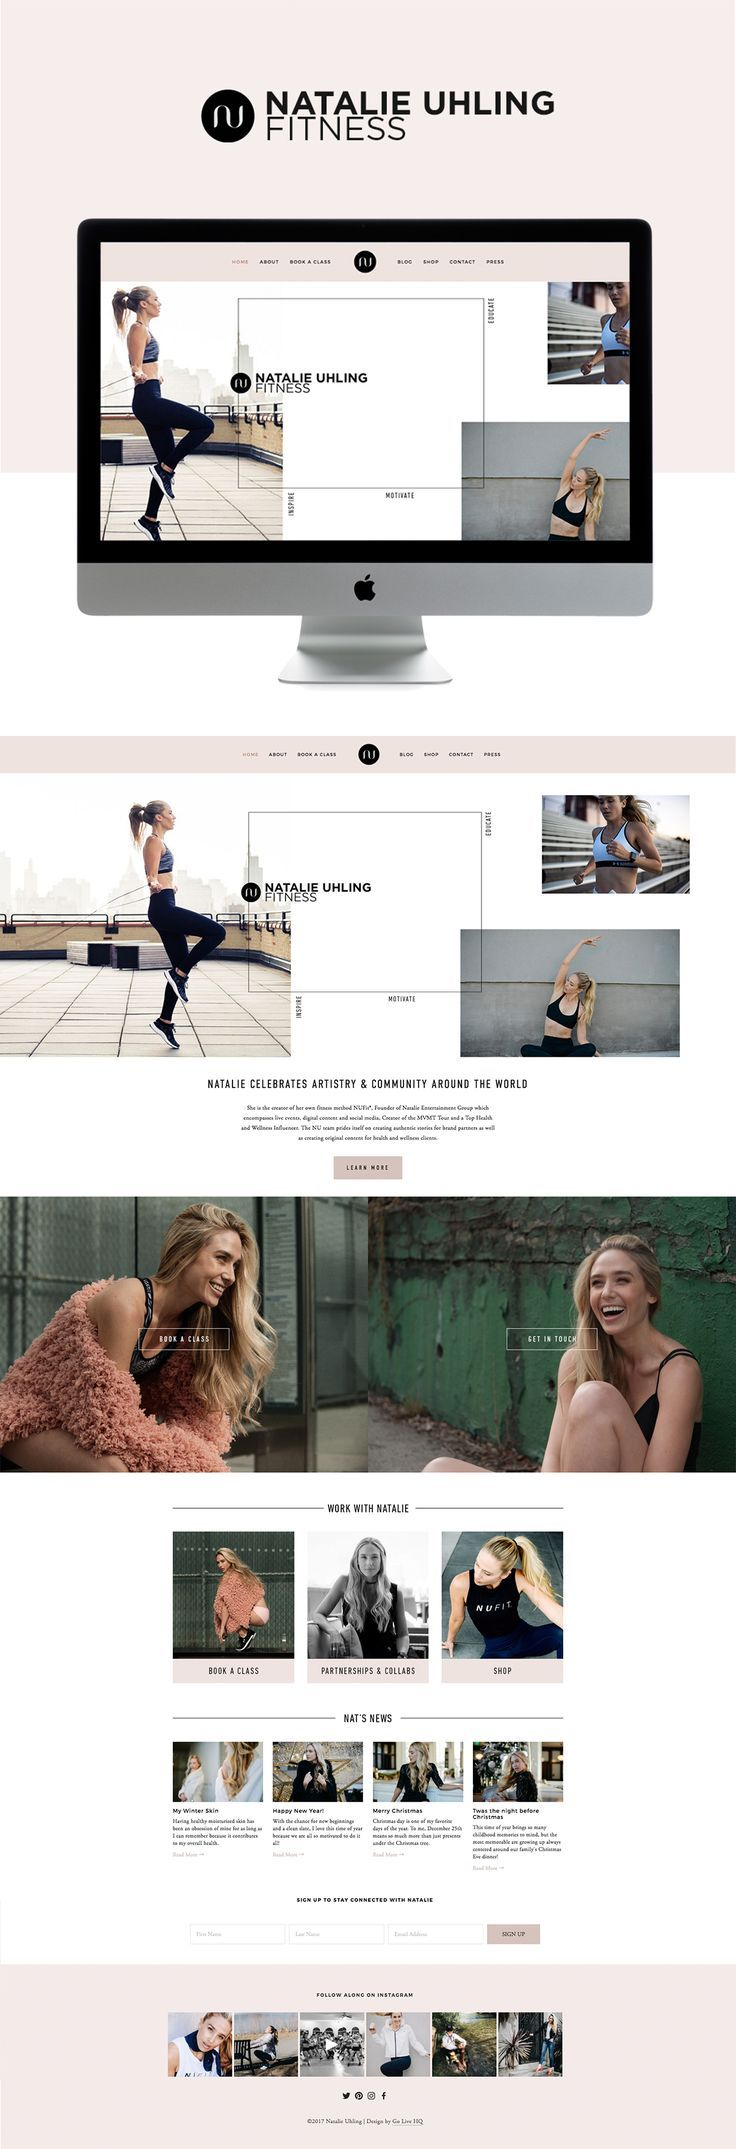 clean feminine elegance meets fitness squarespace website design | designed by: golivehq.co